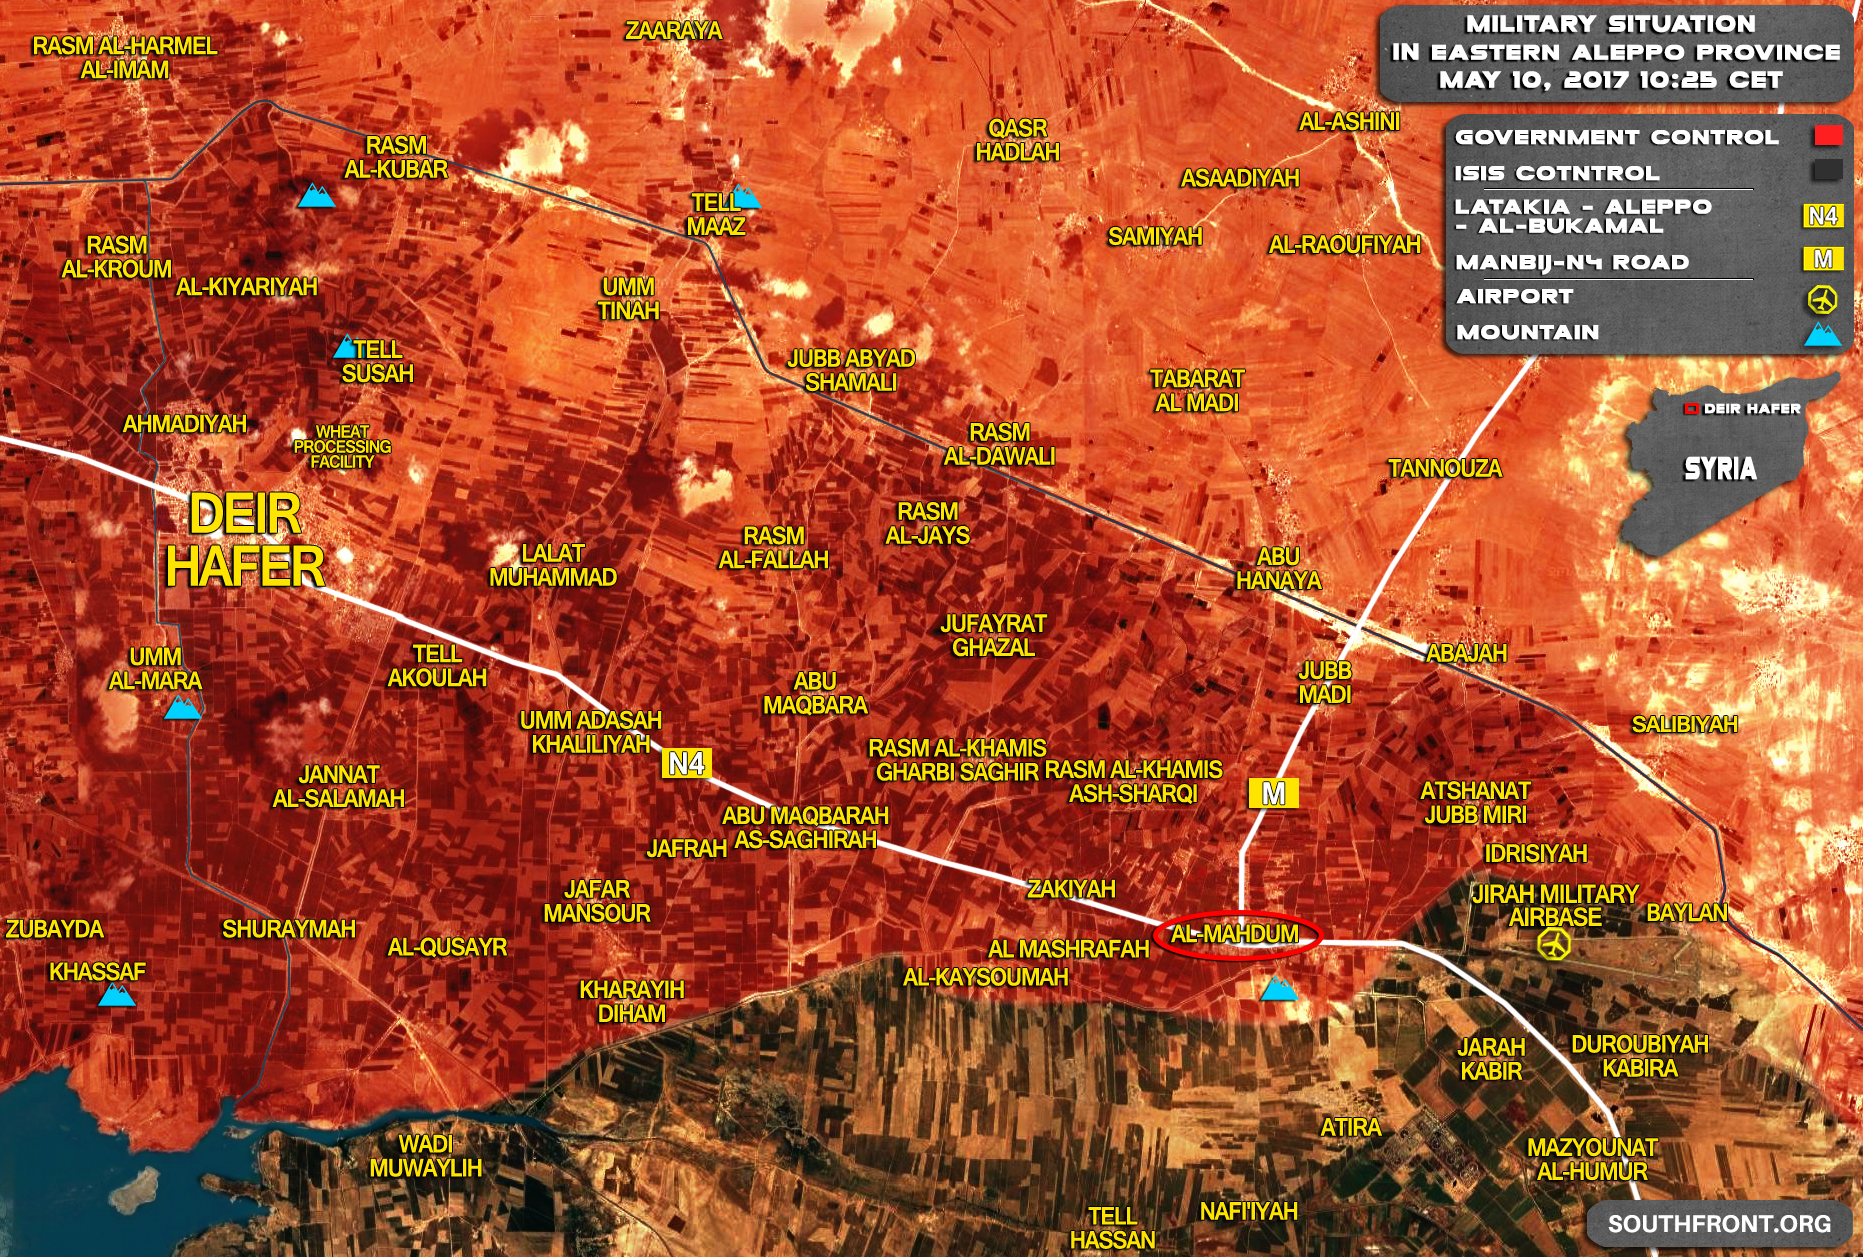 Syrian Army Resumed Military Operation Against ISIS In Eastern Aleppo - Reports